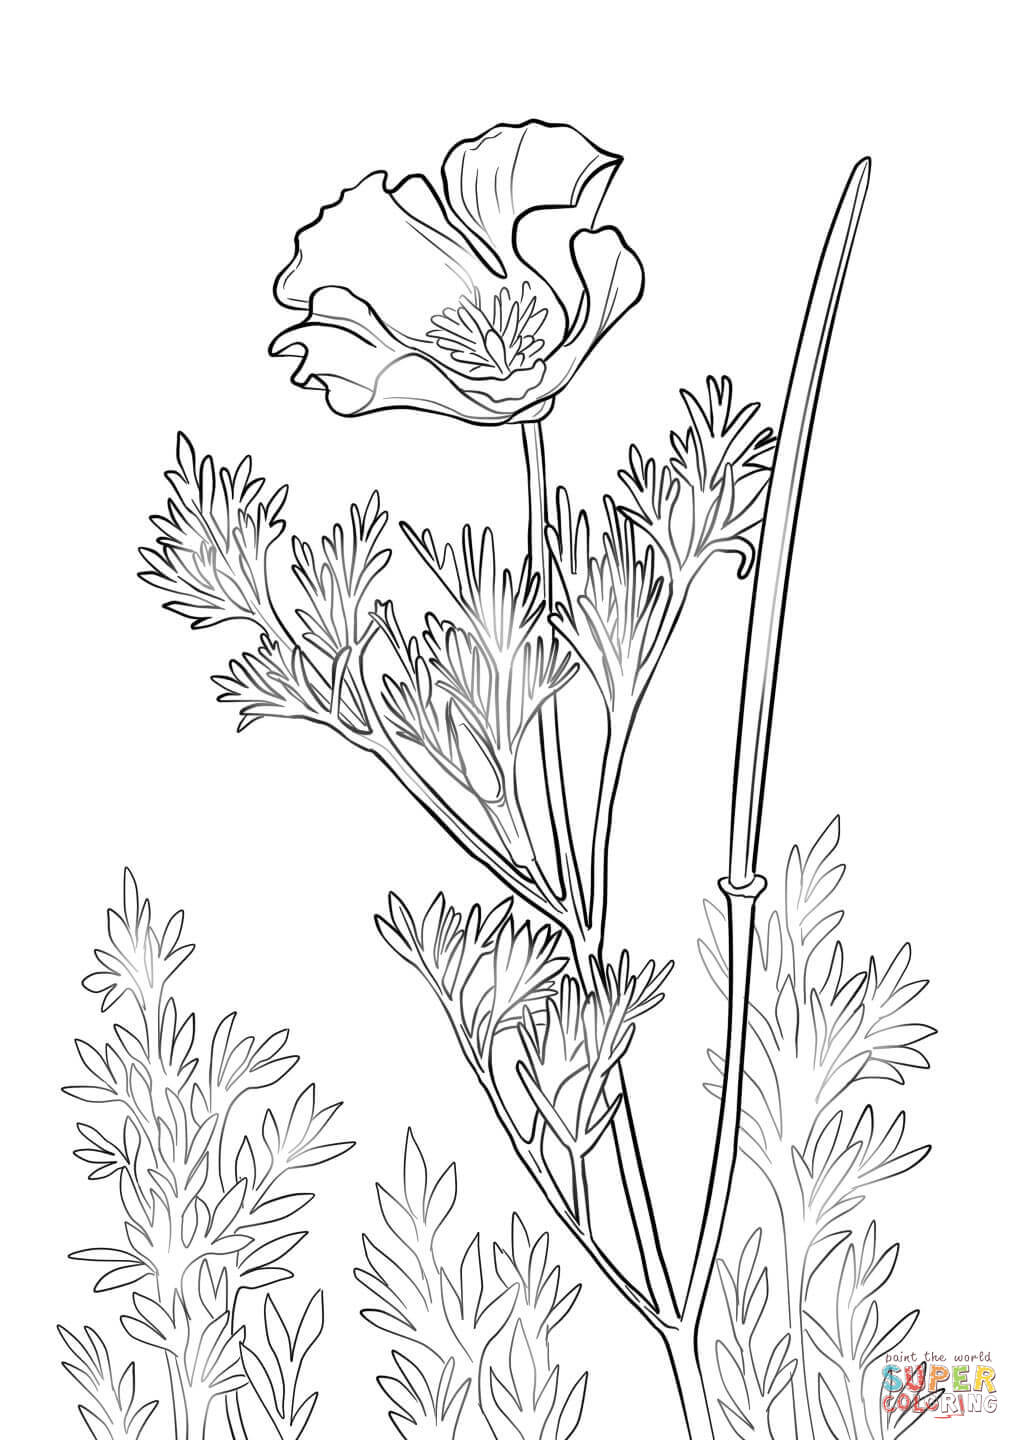 1020x1440 California Poppy Coloring Page Free Printable Coloring Pages